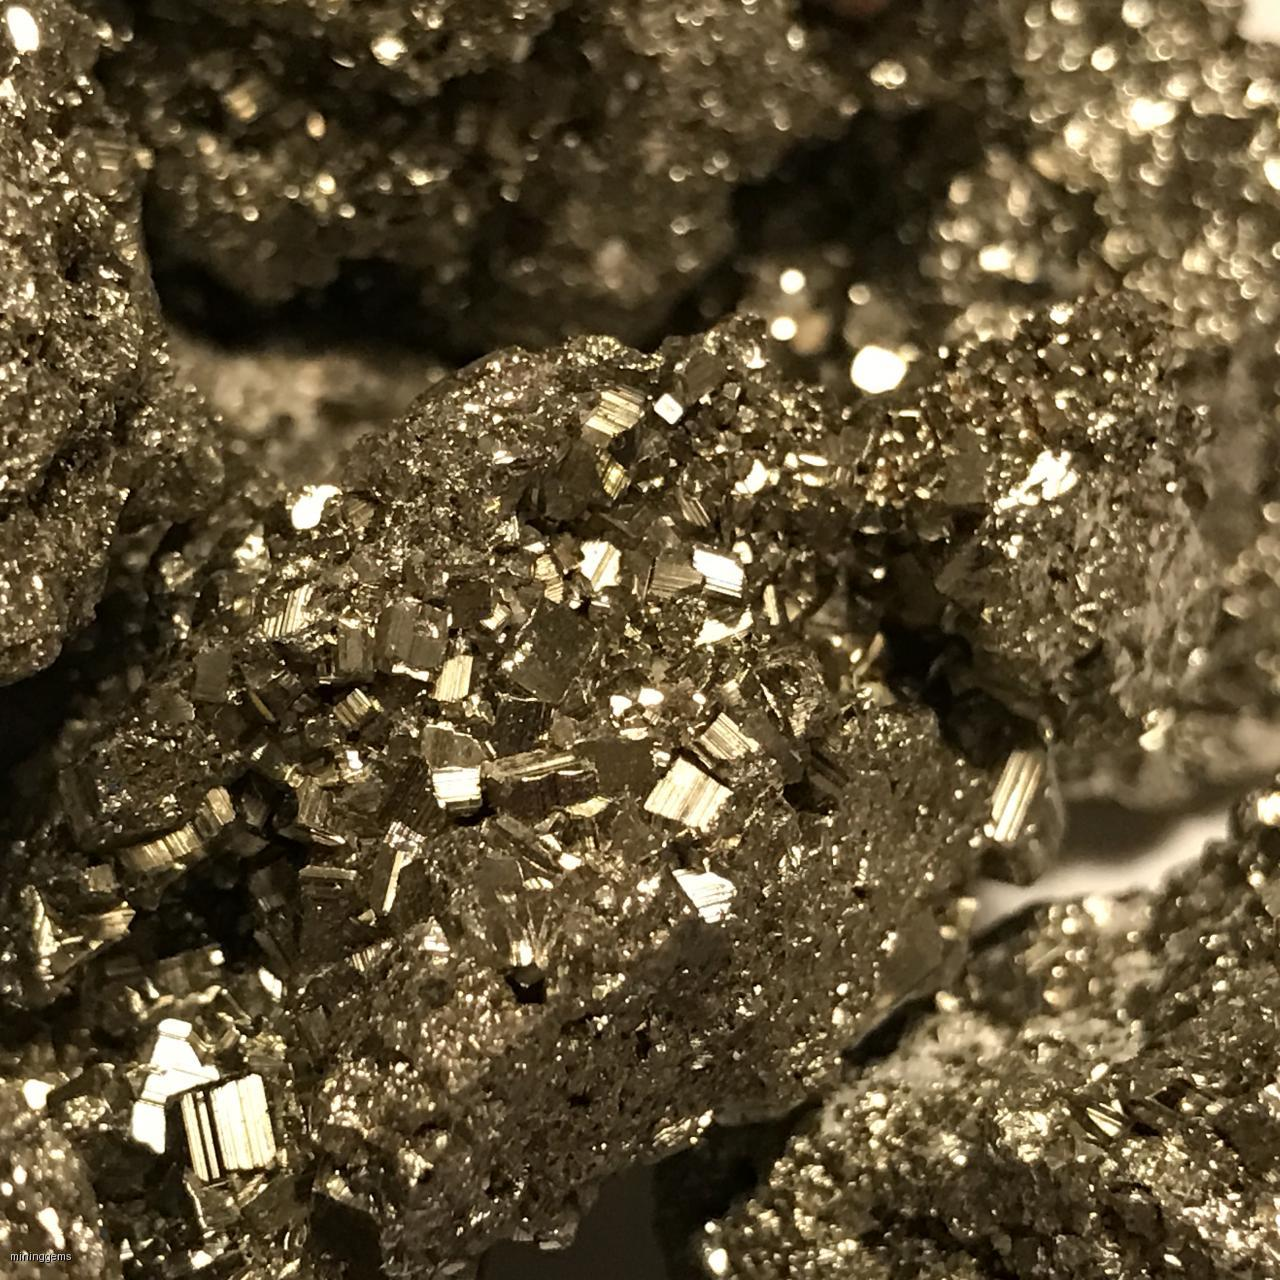 Plus a FREE Faceted Gem 2000 Carat Lots of Unsearched Natural Black Tourmaline